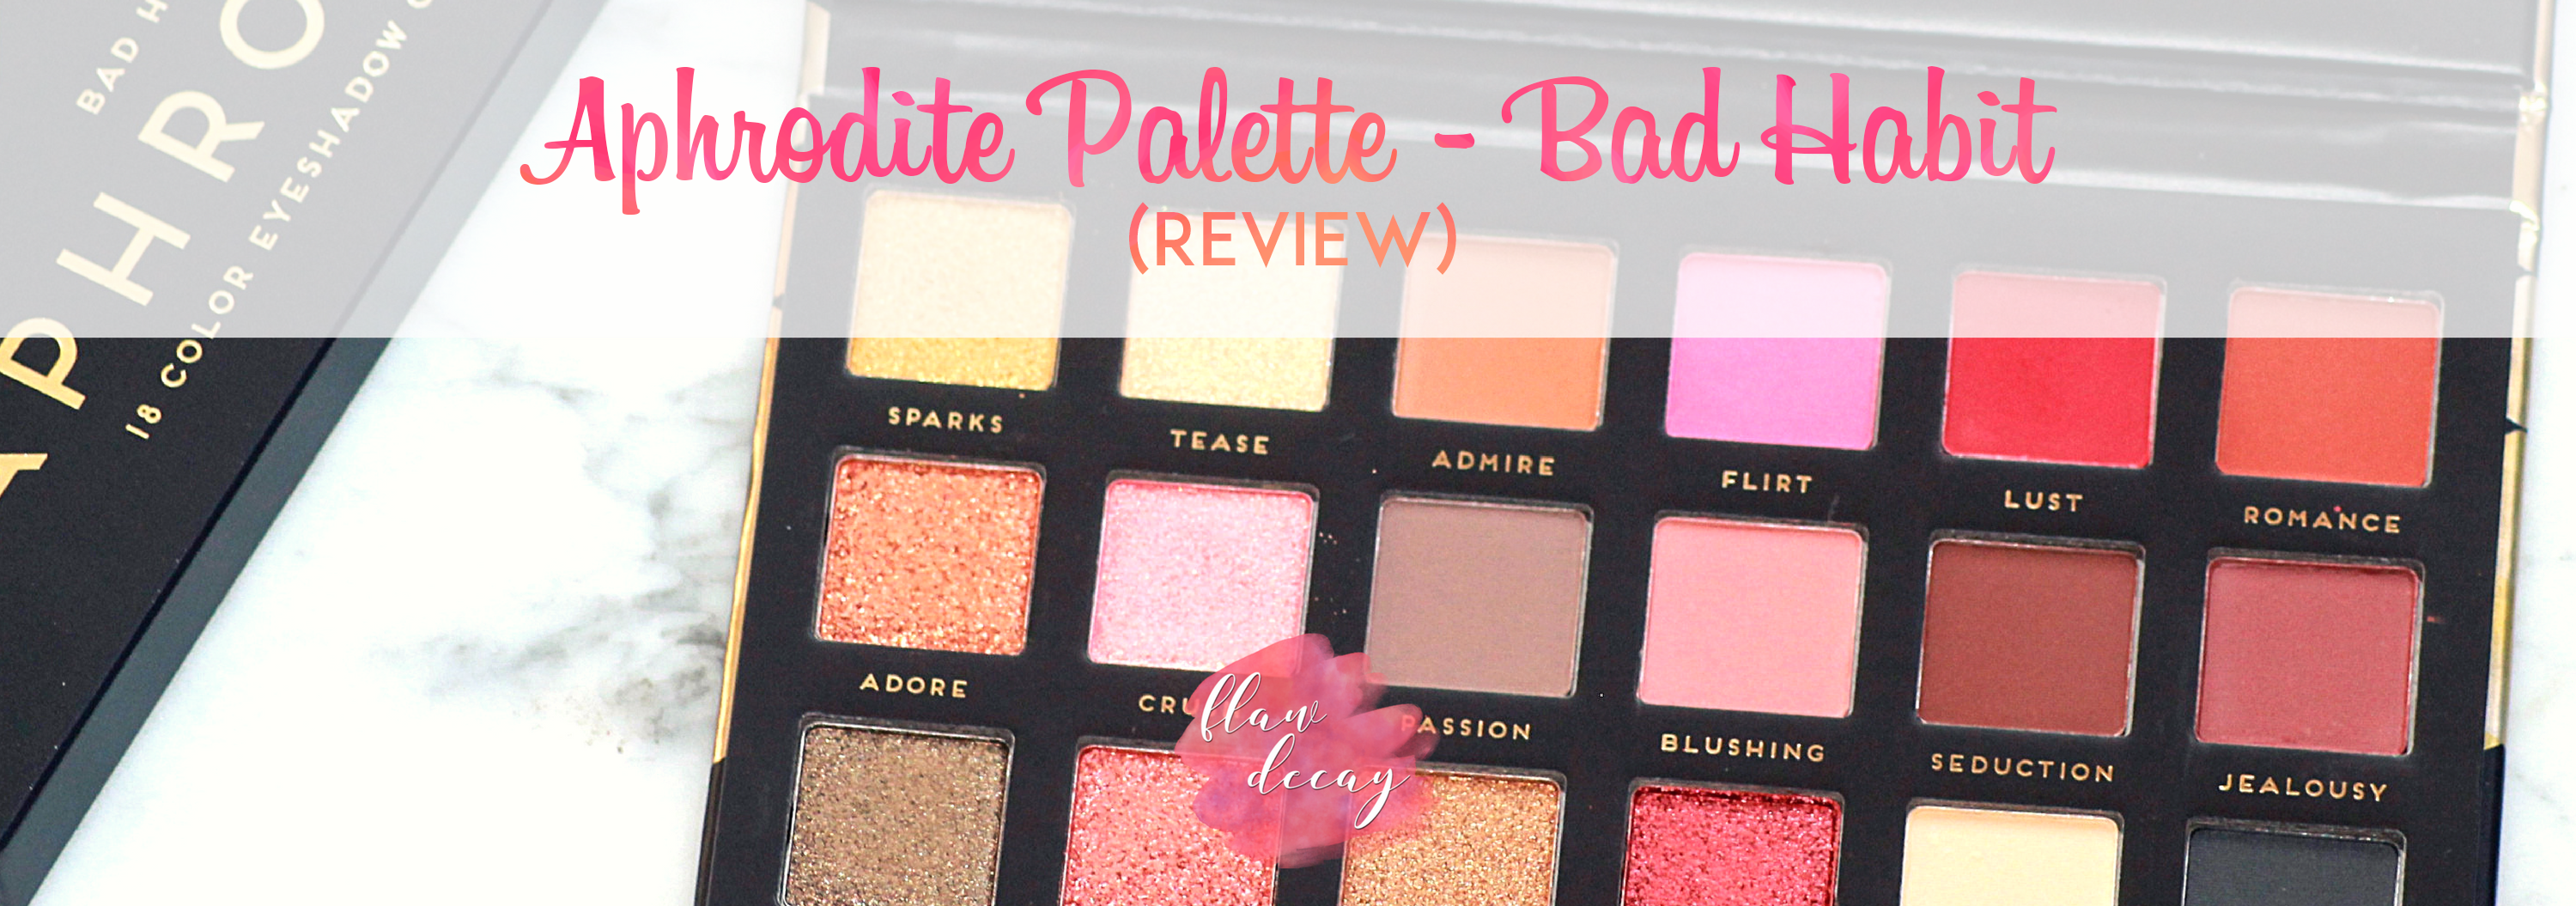 Aphrodite Palette – Bad Habit (Review)